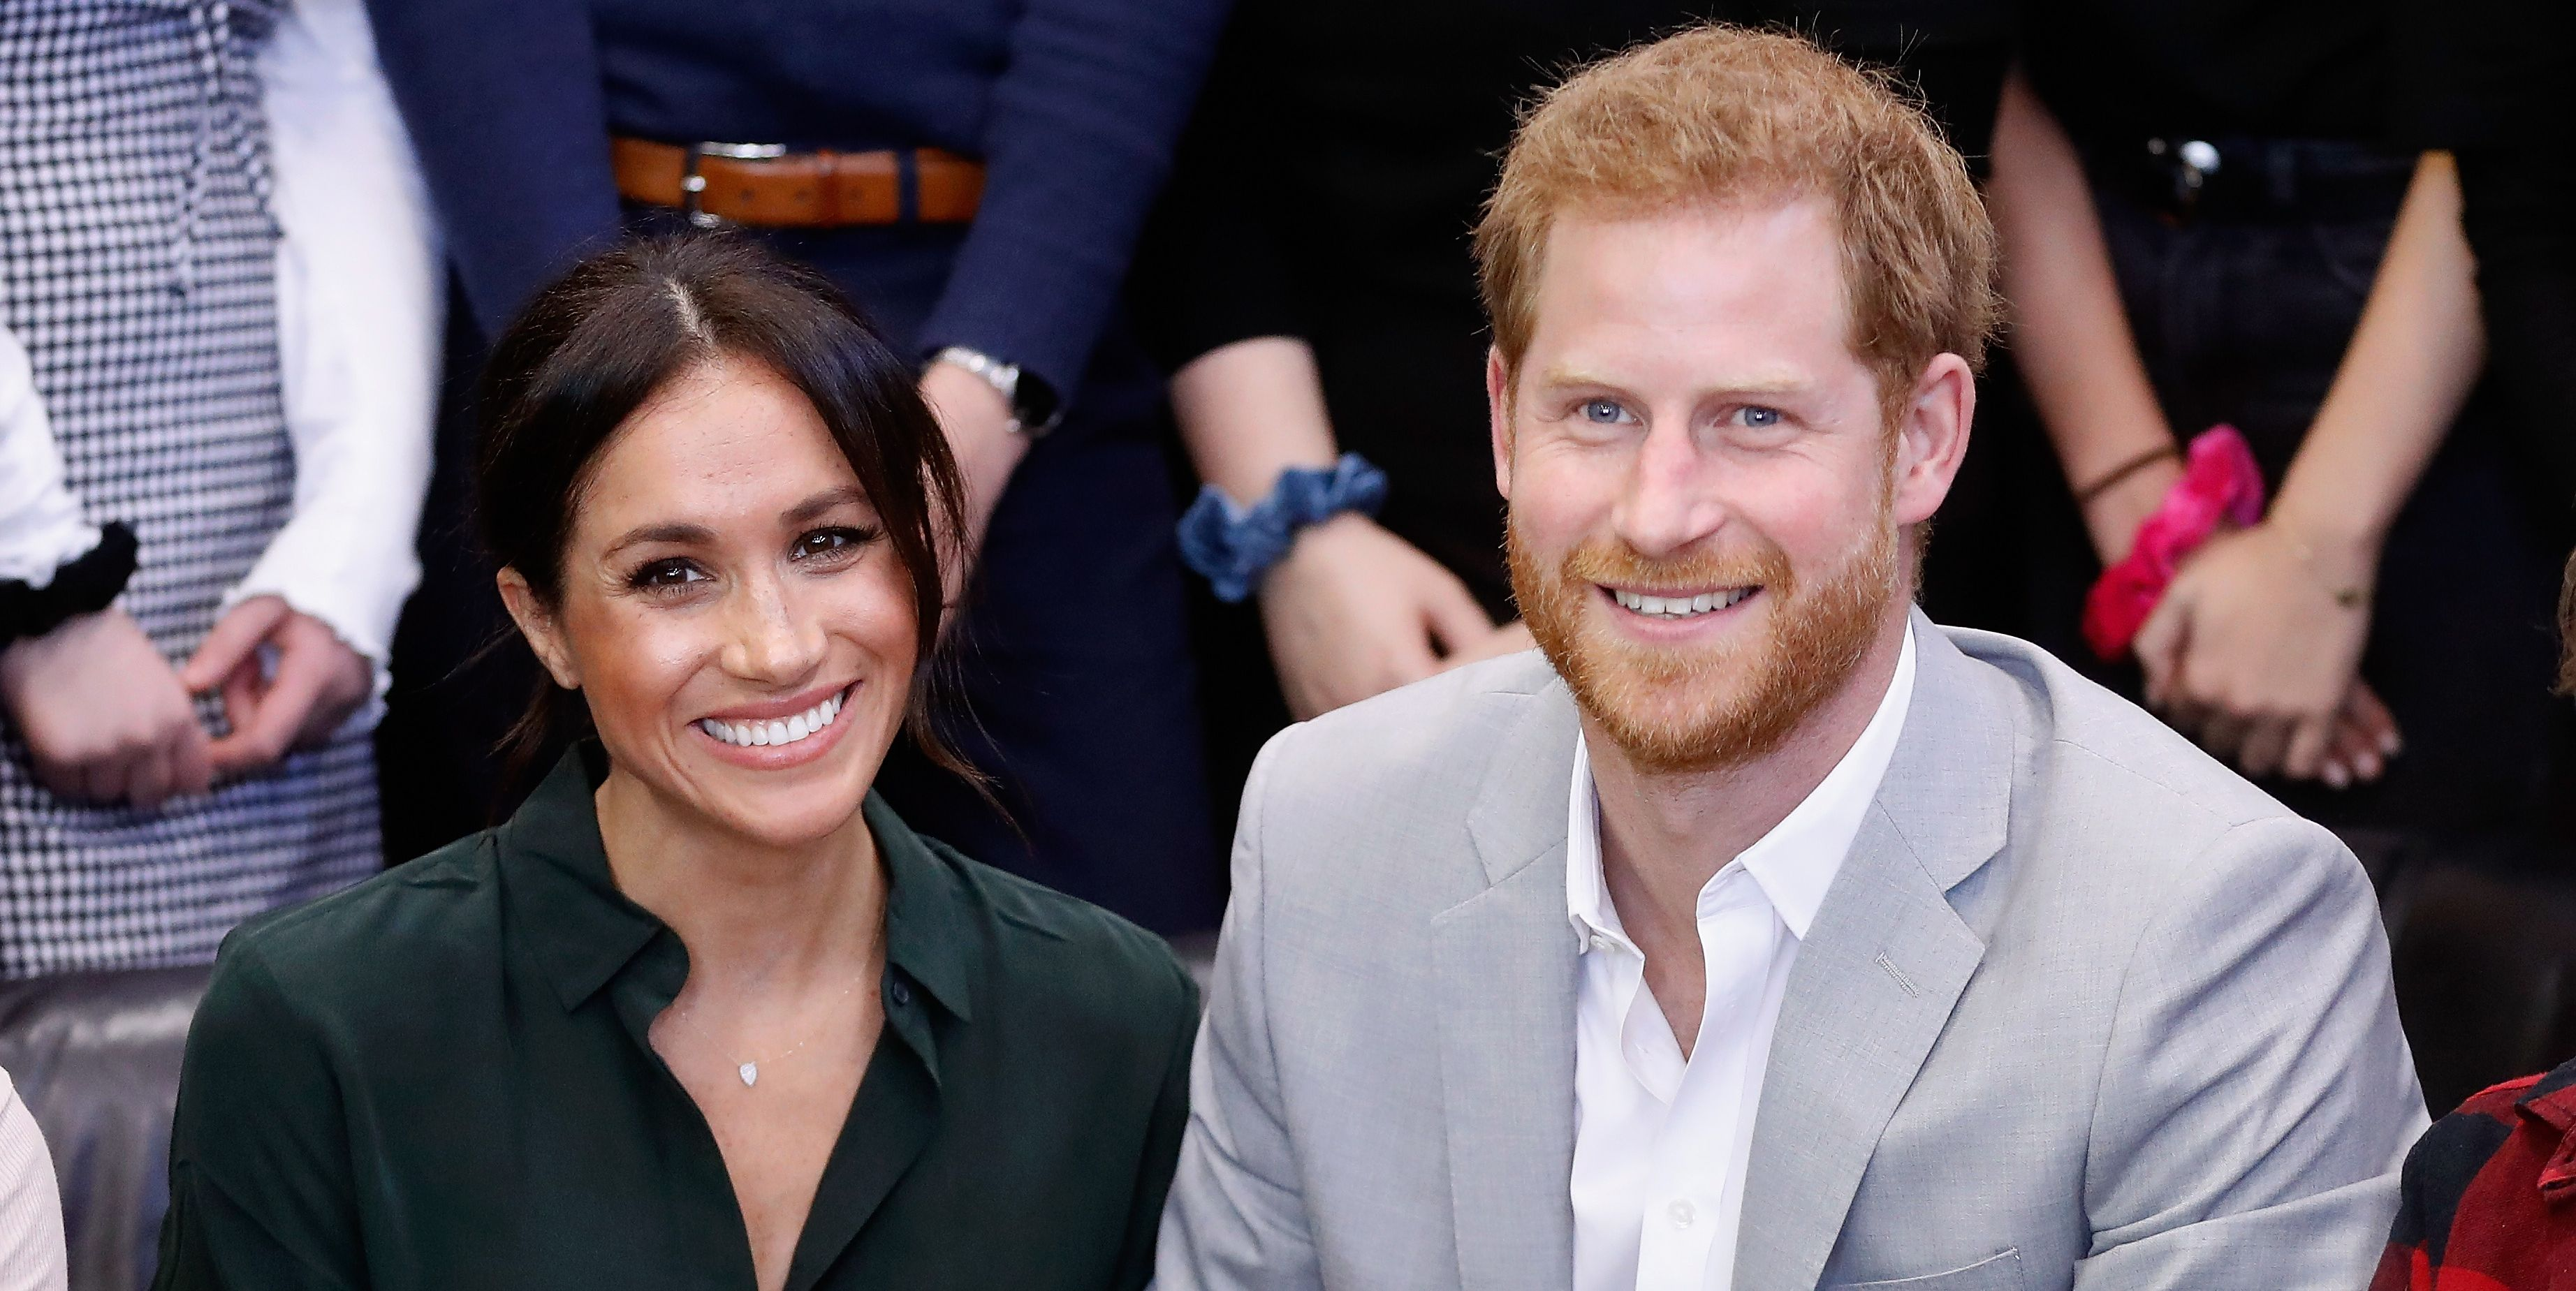 Prince Harry and Meghan Markle apparently won't be spending Christmas morning together